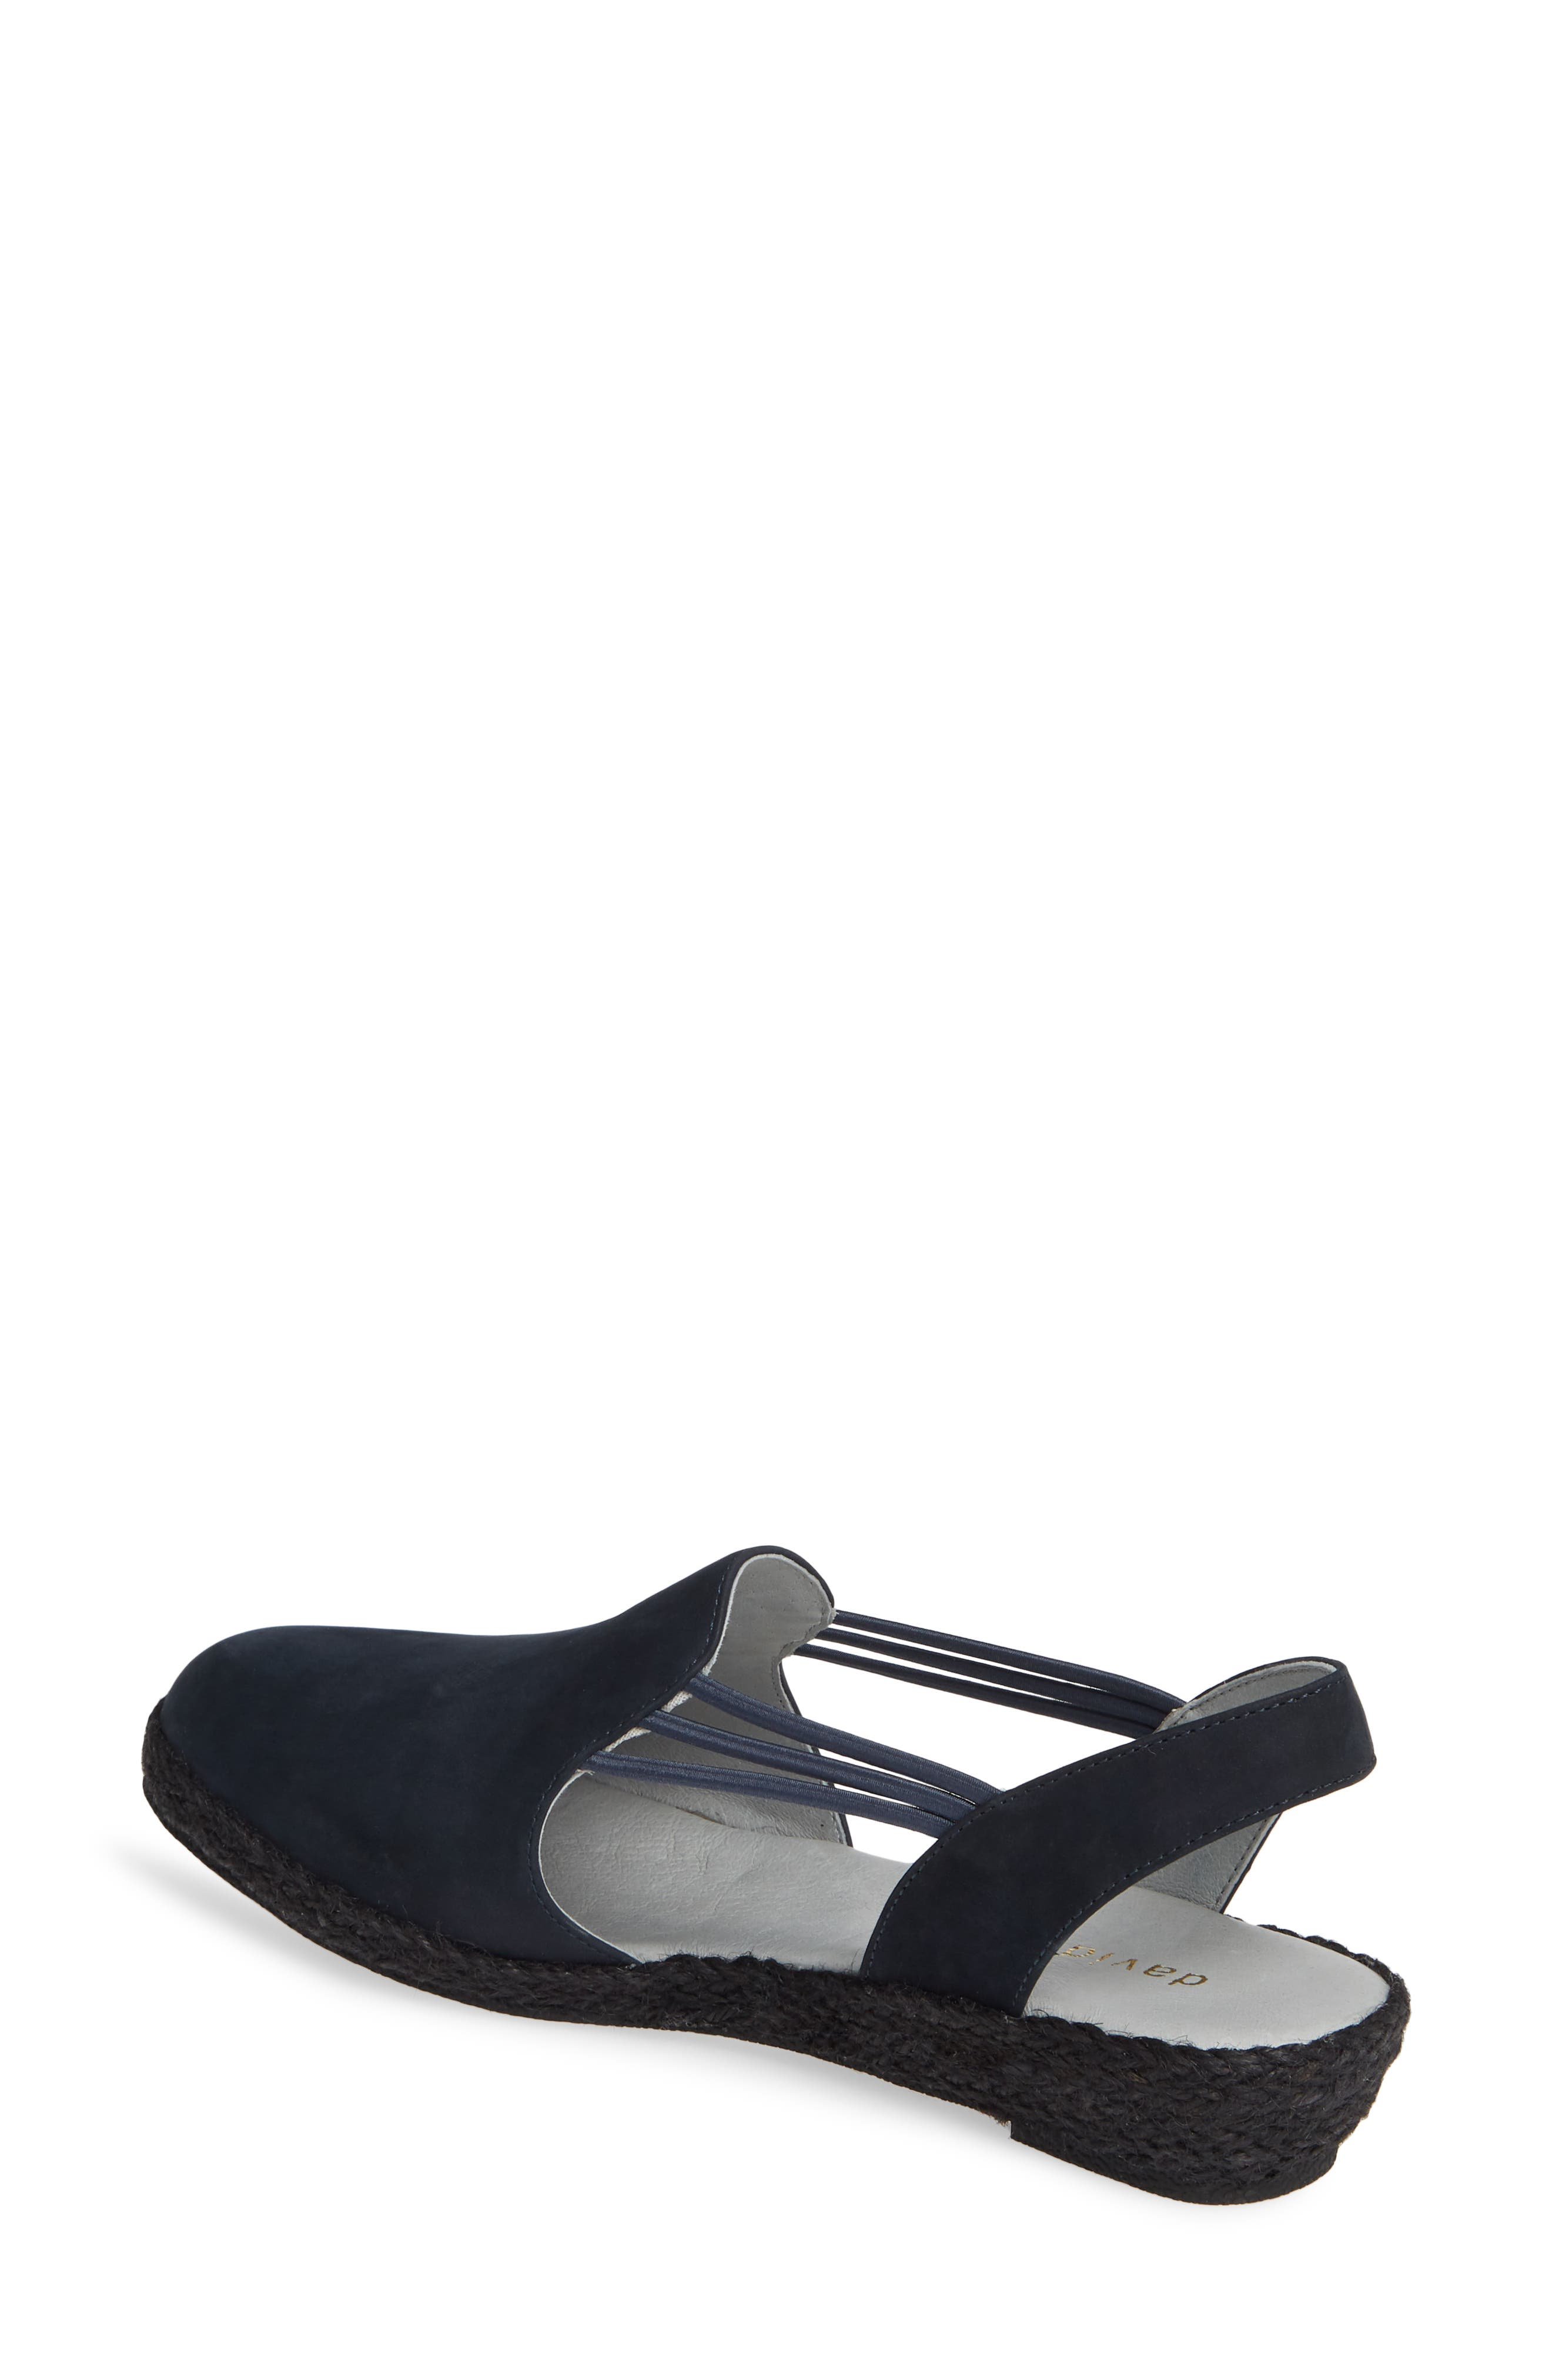 DAVID TATE,                             'Nelly' Slingback Wedge Sandal,                             Alternate thumbnail 2, color,                             NAVY NUBUCK LEATHER